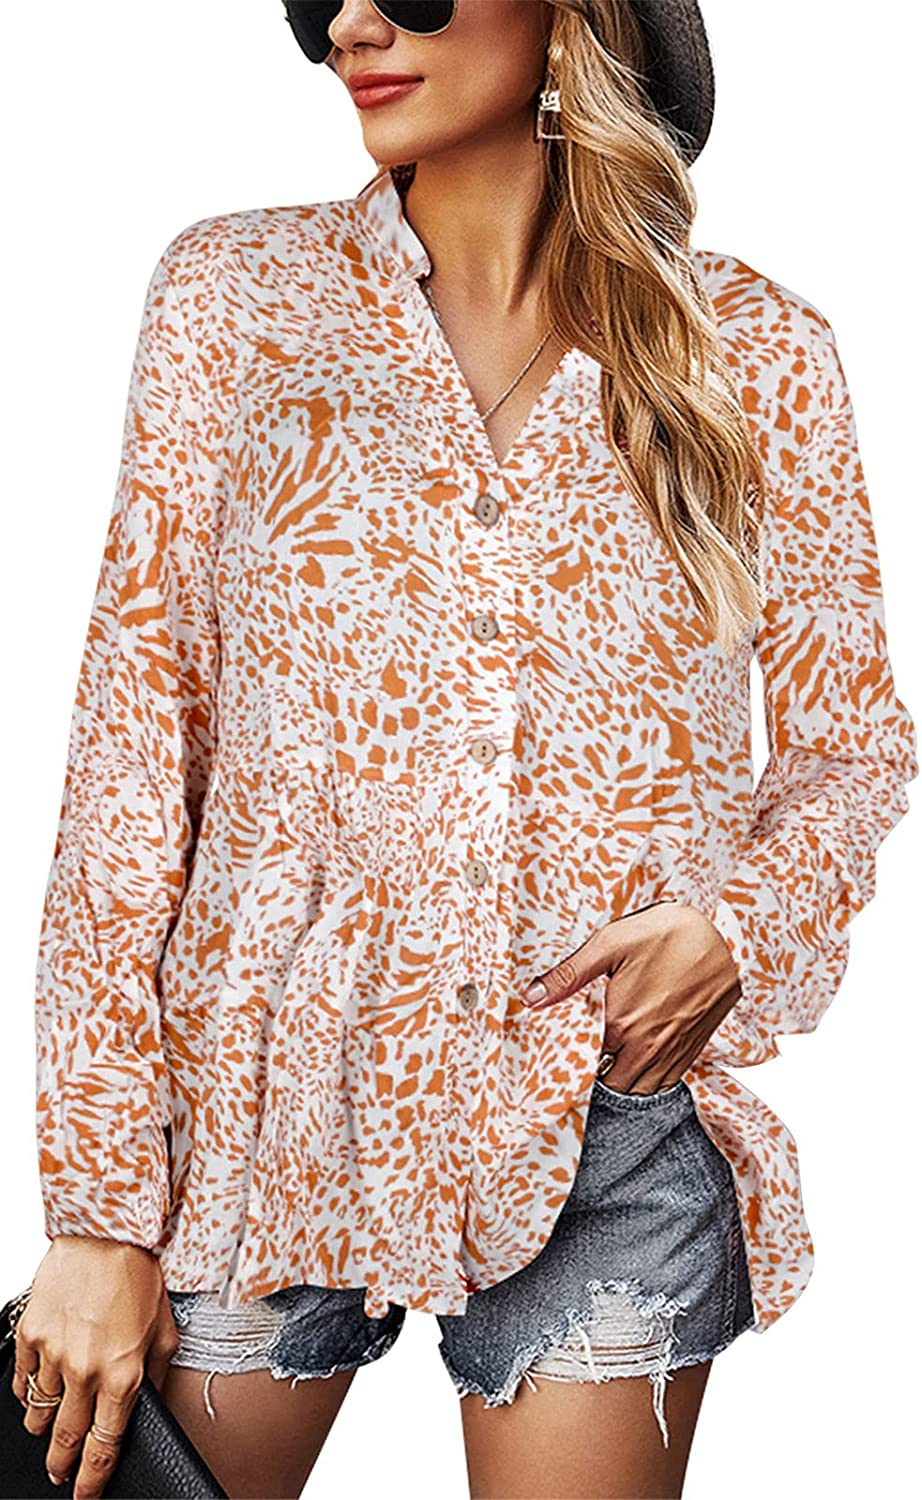 ALLTB Womens Casual Tunic Tops Floral Print Button Down Shirt Flowy V-Neck Long Sleeve Loose Blouses